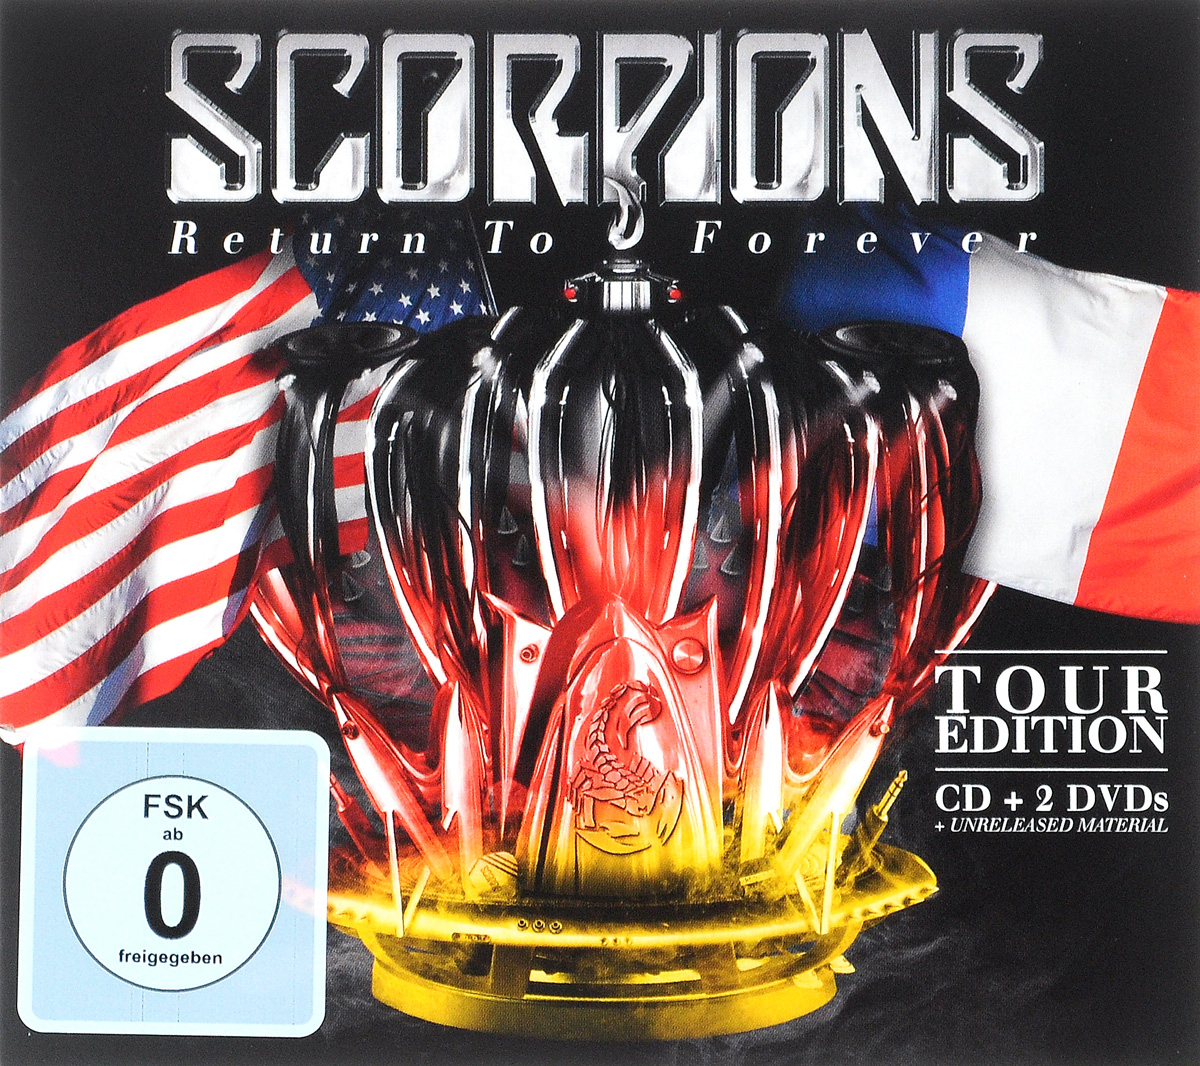 Scorpions Scorpions. Return To Forever. Tour Edition (CD + 2 DVD) cd scorpions la selection best of